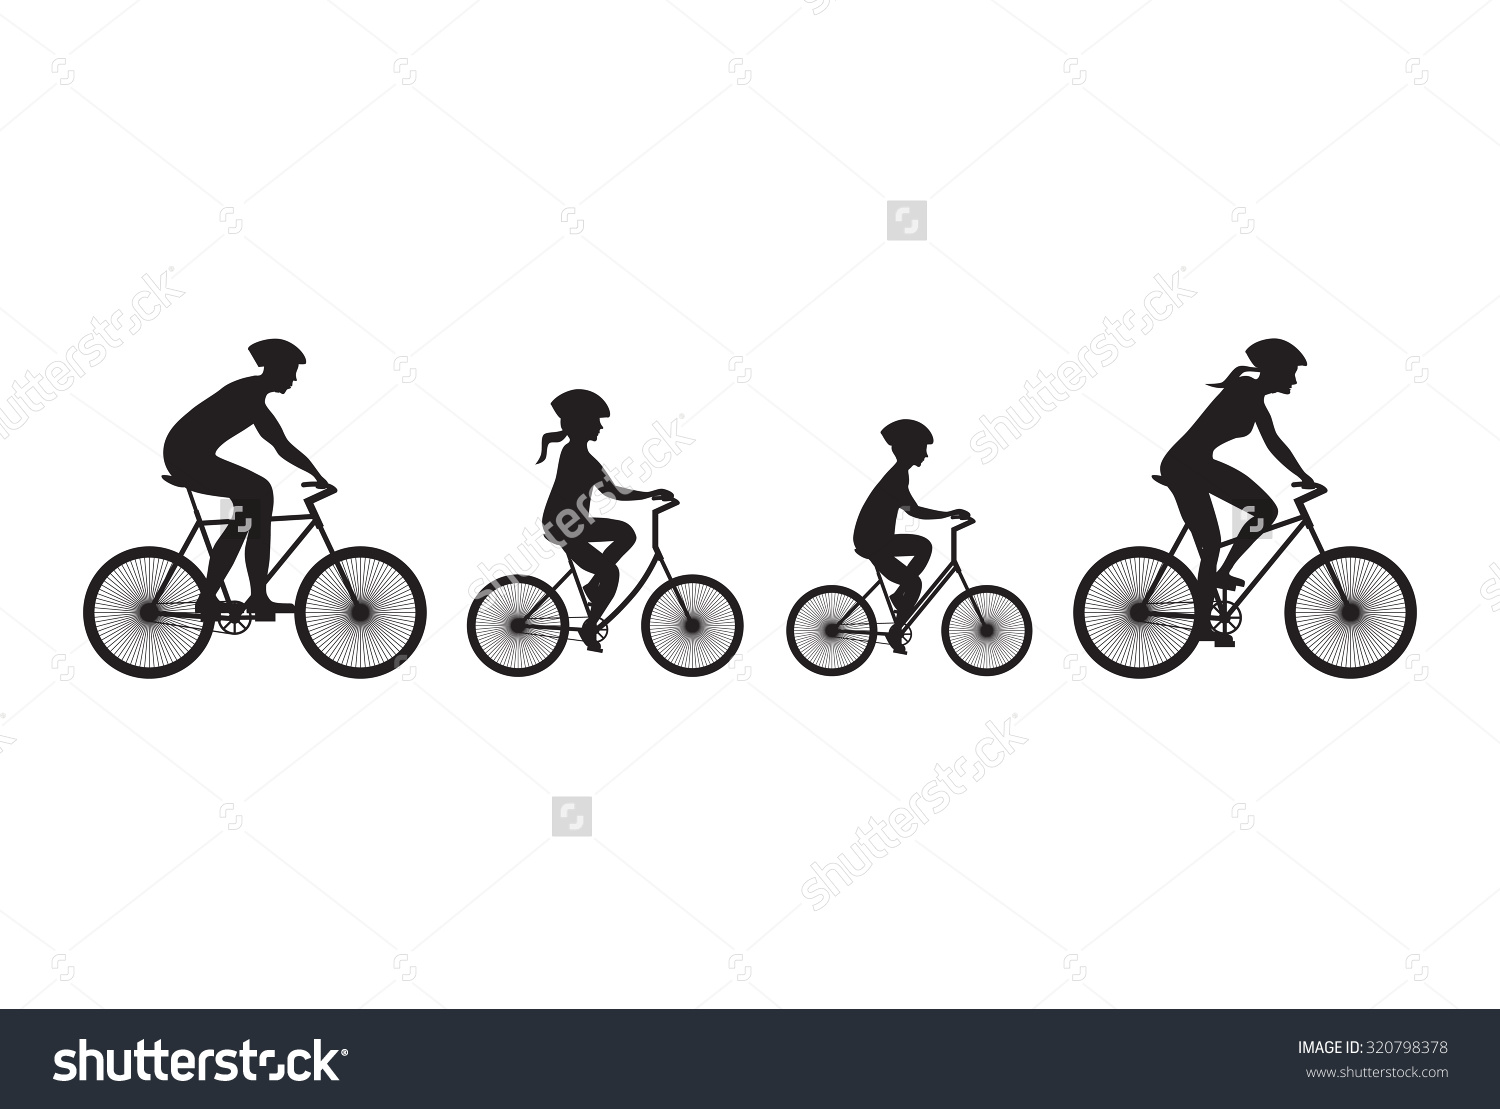 Bicycle clipart family cycling Download Clip Cliparts Free bikes